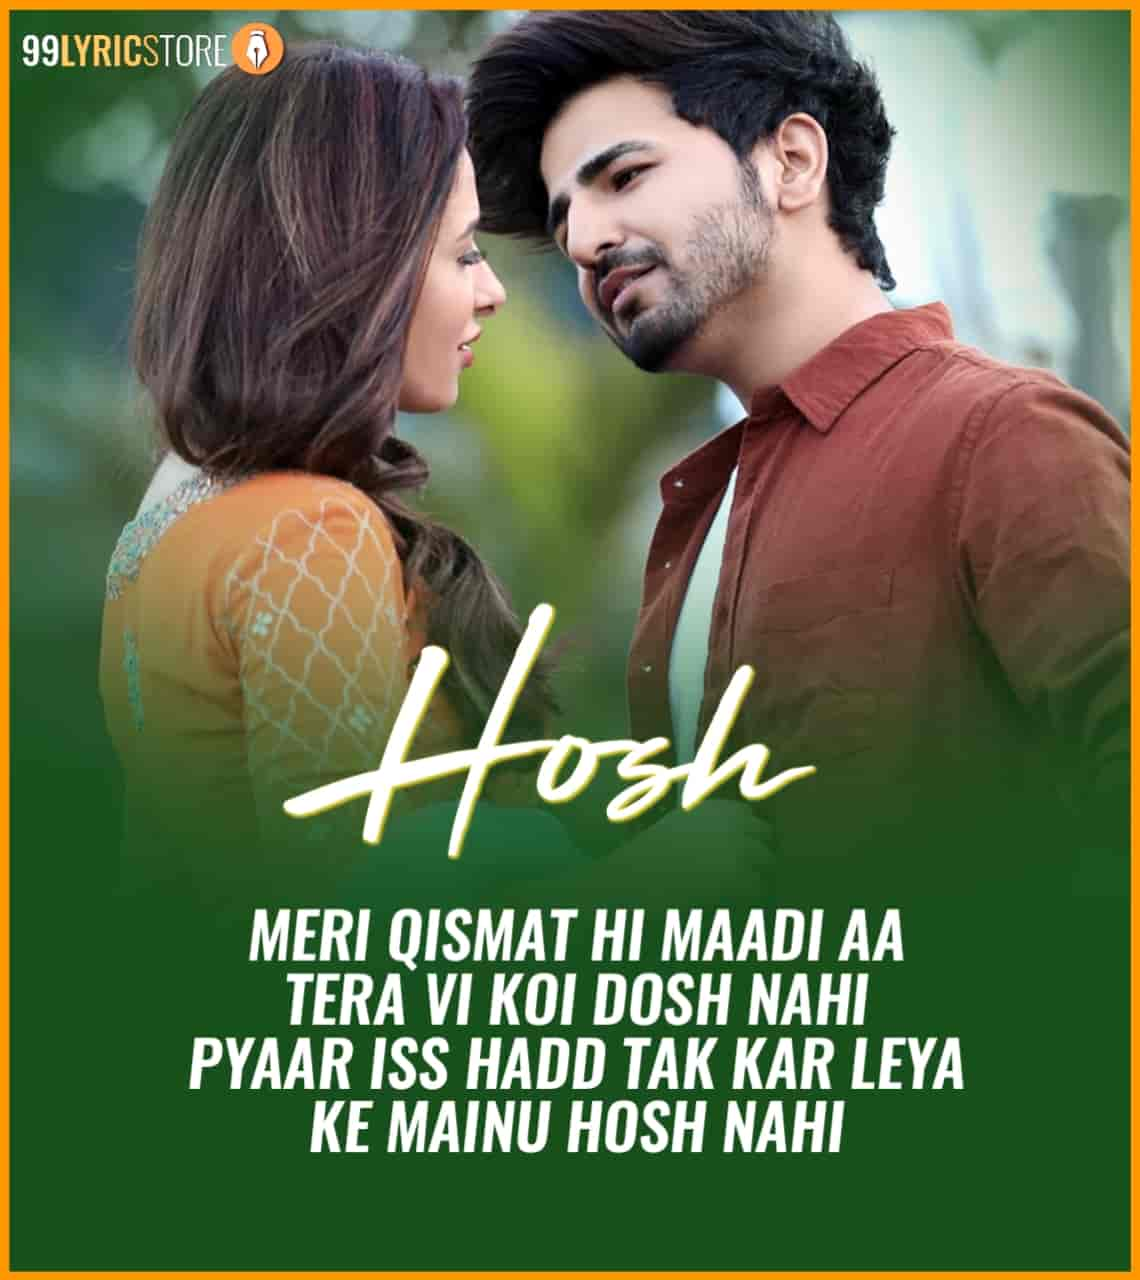 Hosh punjabi song by Nikk Features Mahira Sharma